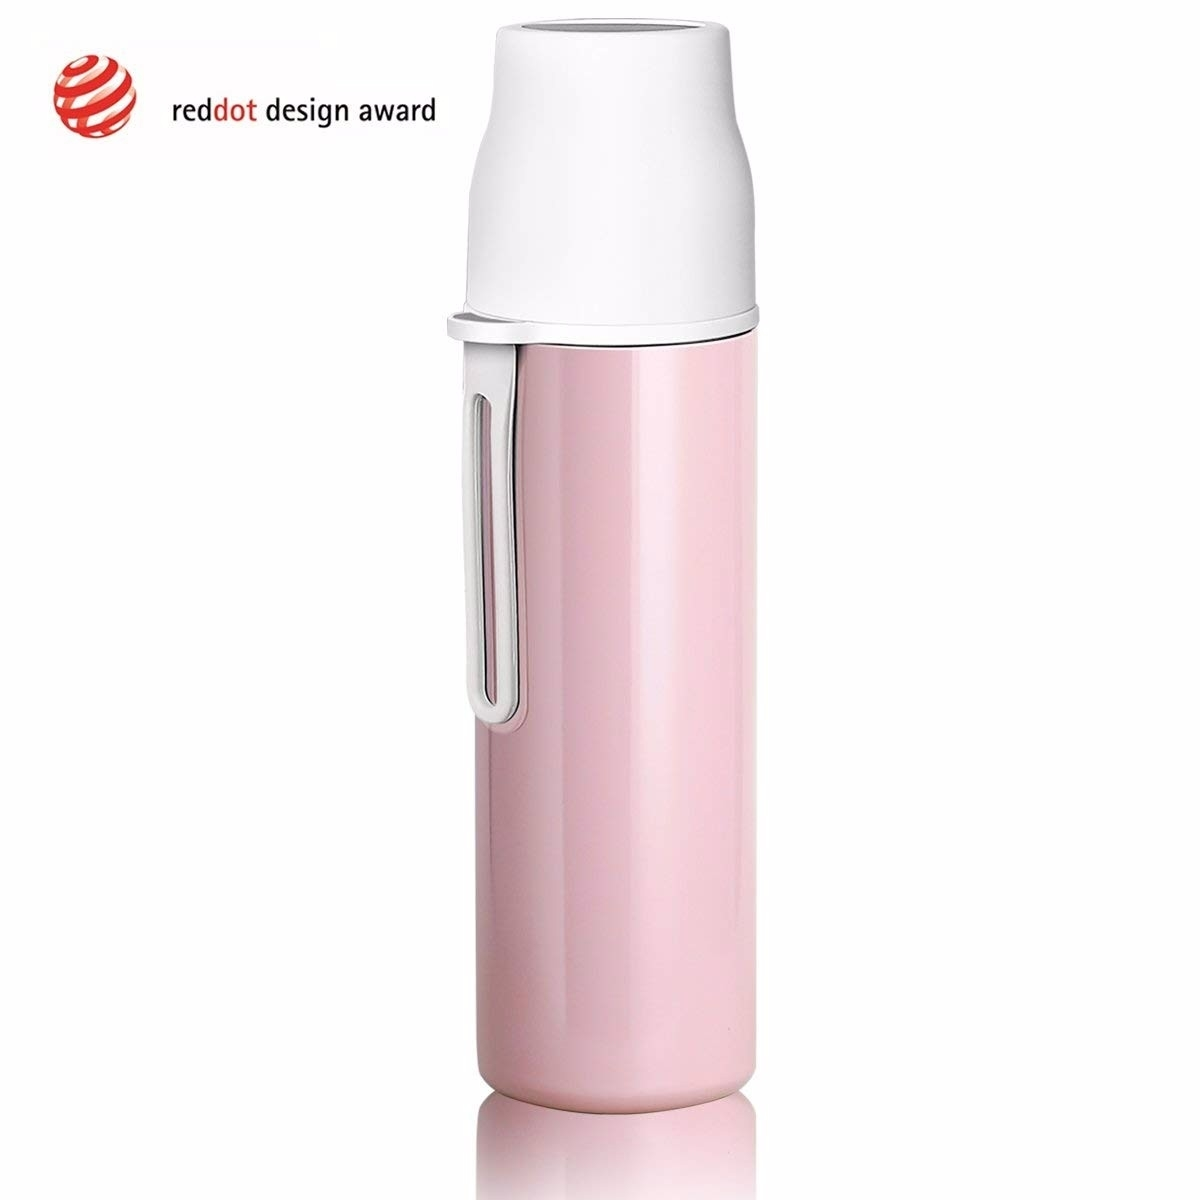 Stainless Steel Leak Proof Sport Water Bottles, Double Walled Vacuum Insulated Thermoses, Come with a Cleaning Brush 16ounce - pink